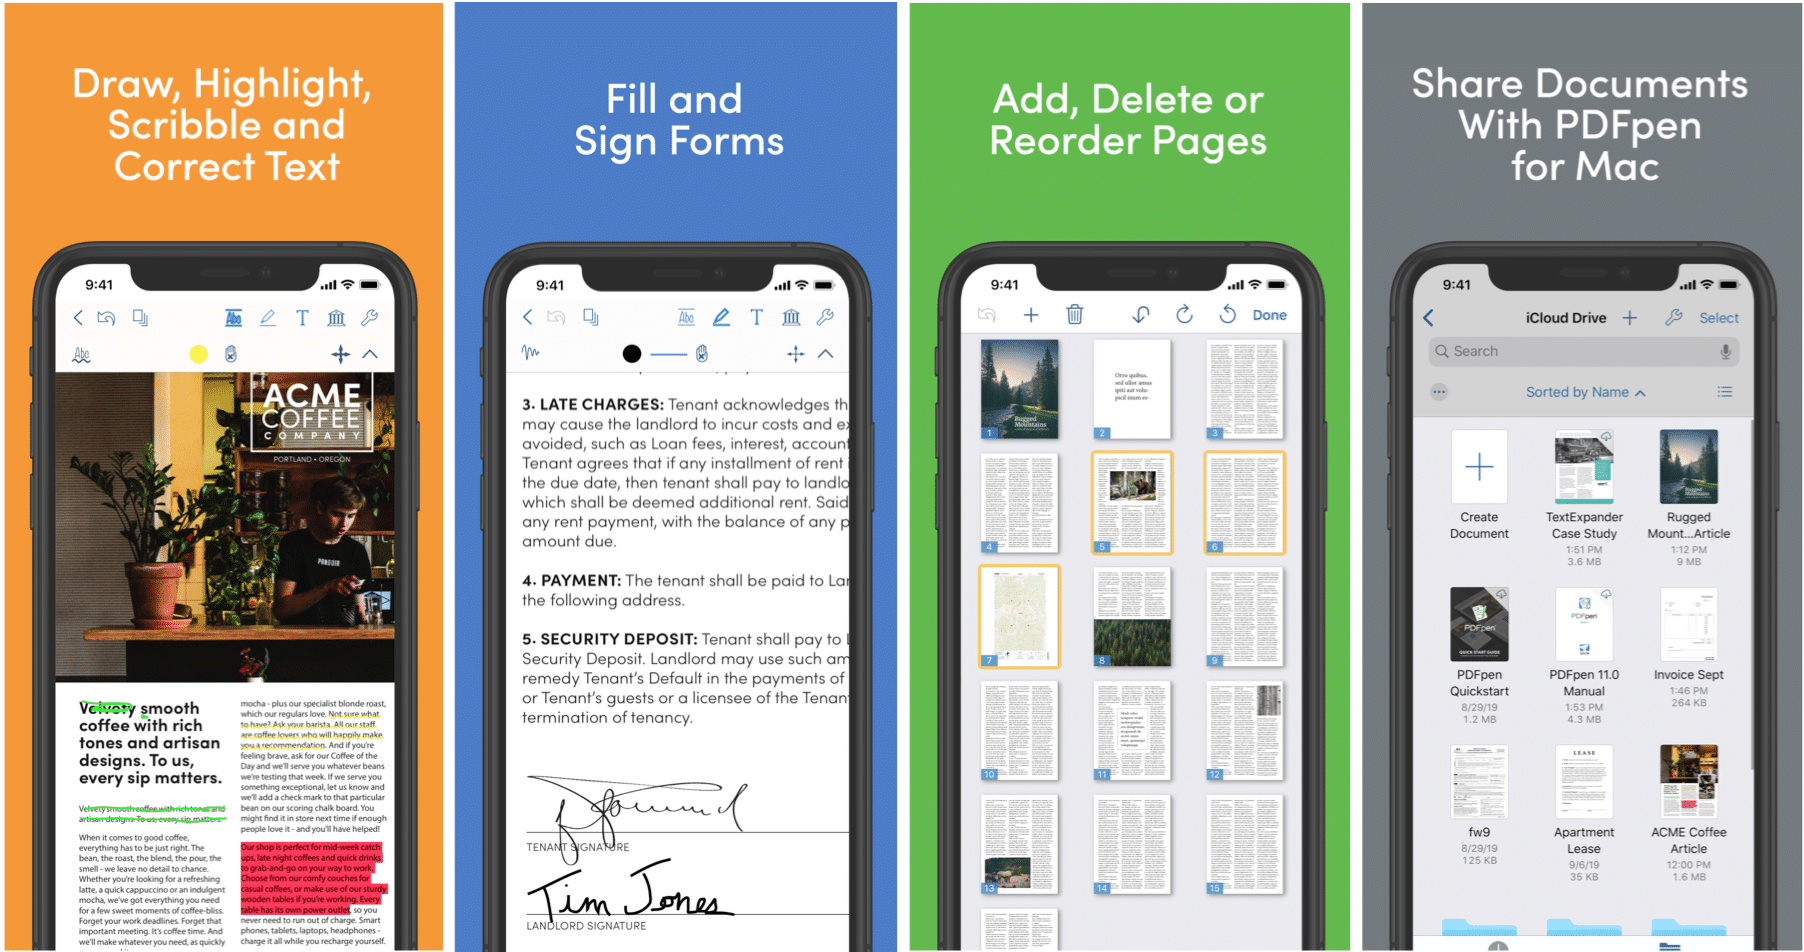 Mobile PDF Editing with PDFpen for iPad & iPhone